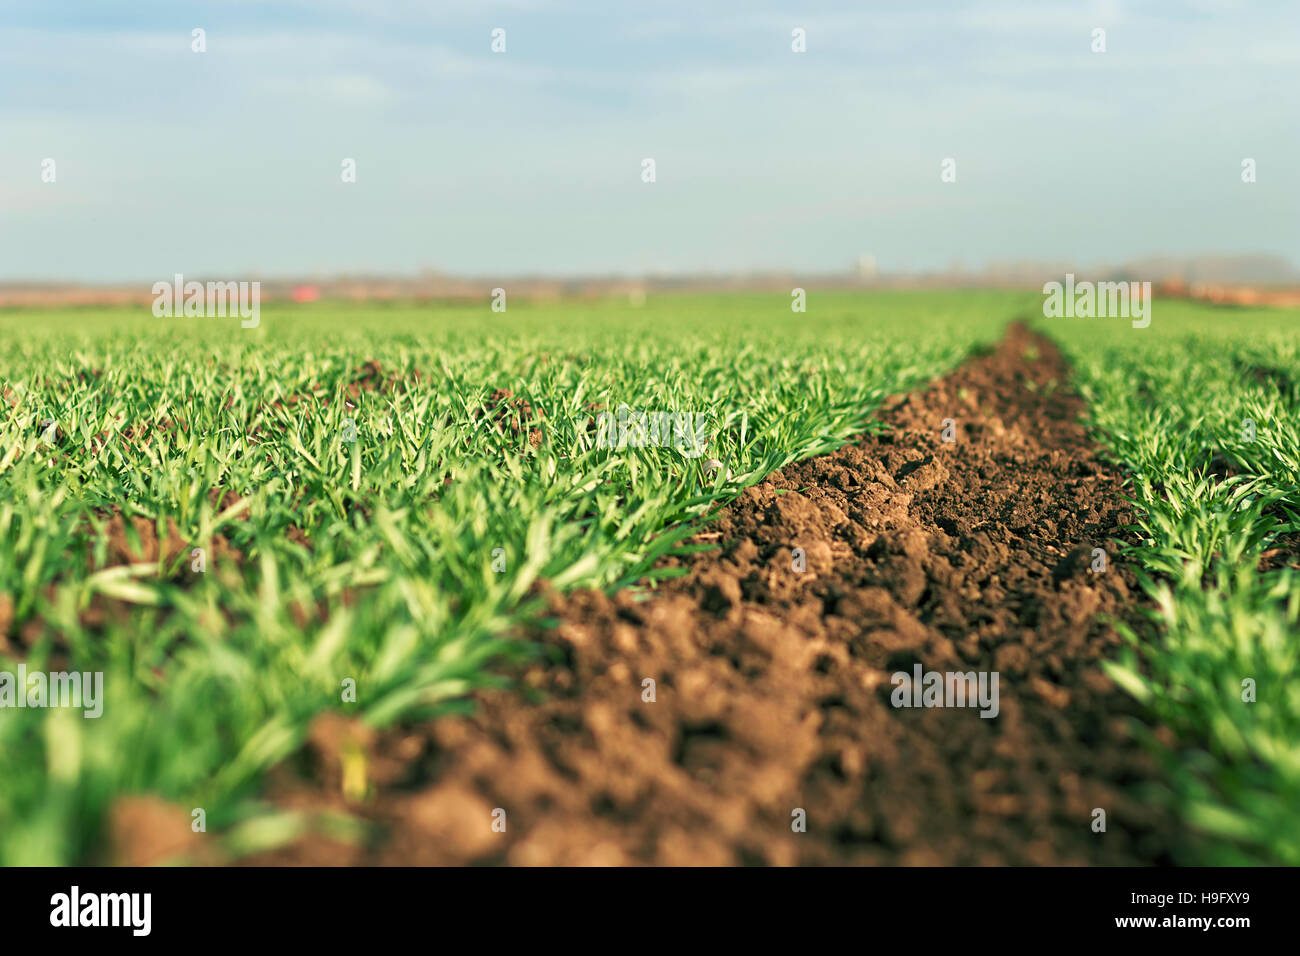 Young green wheat growing in soil. Young wheat seedlings growing in a field. Stock Photo